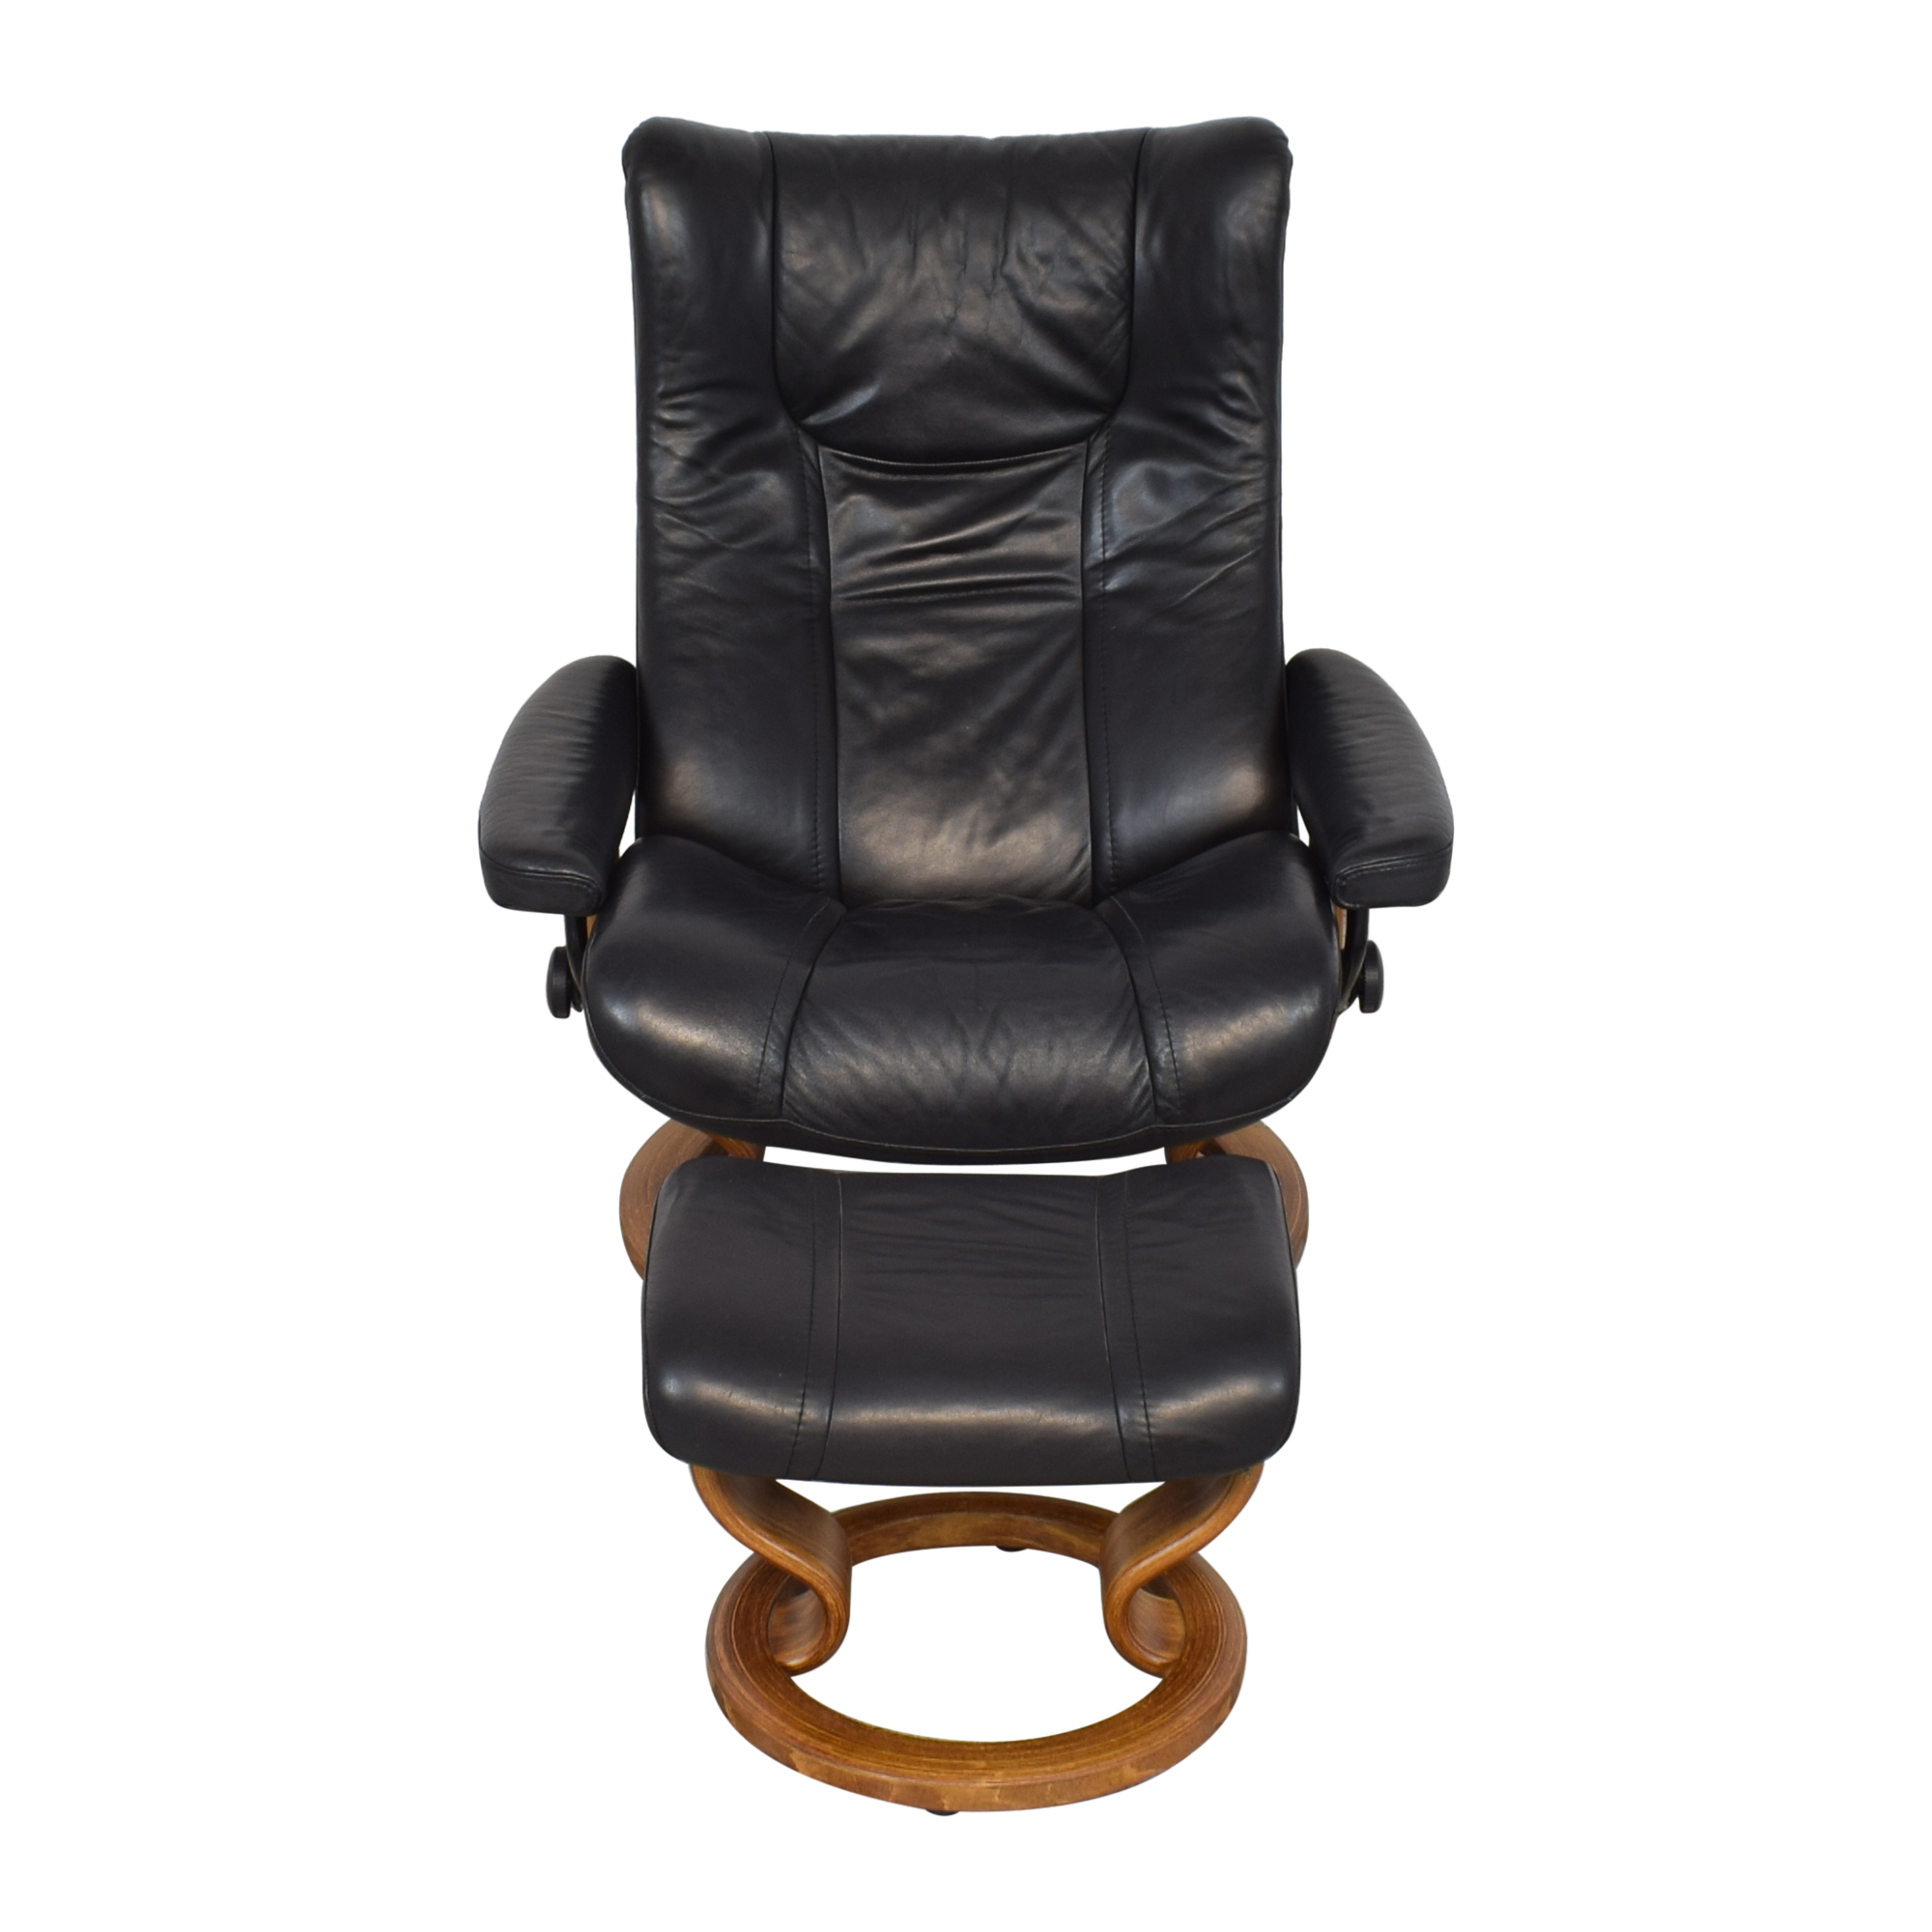 shop Ekornes Stressless Chair with Ottoman Ekornes Chairs